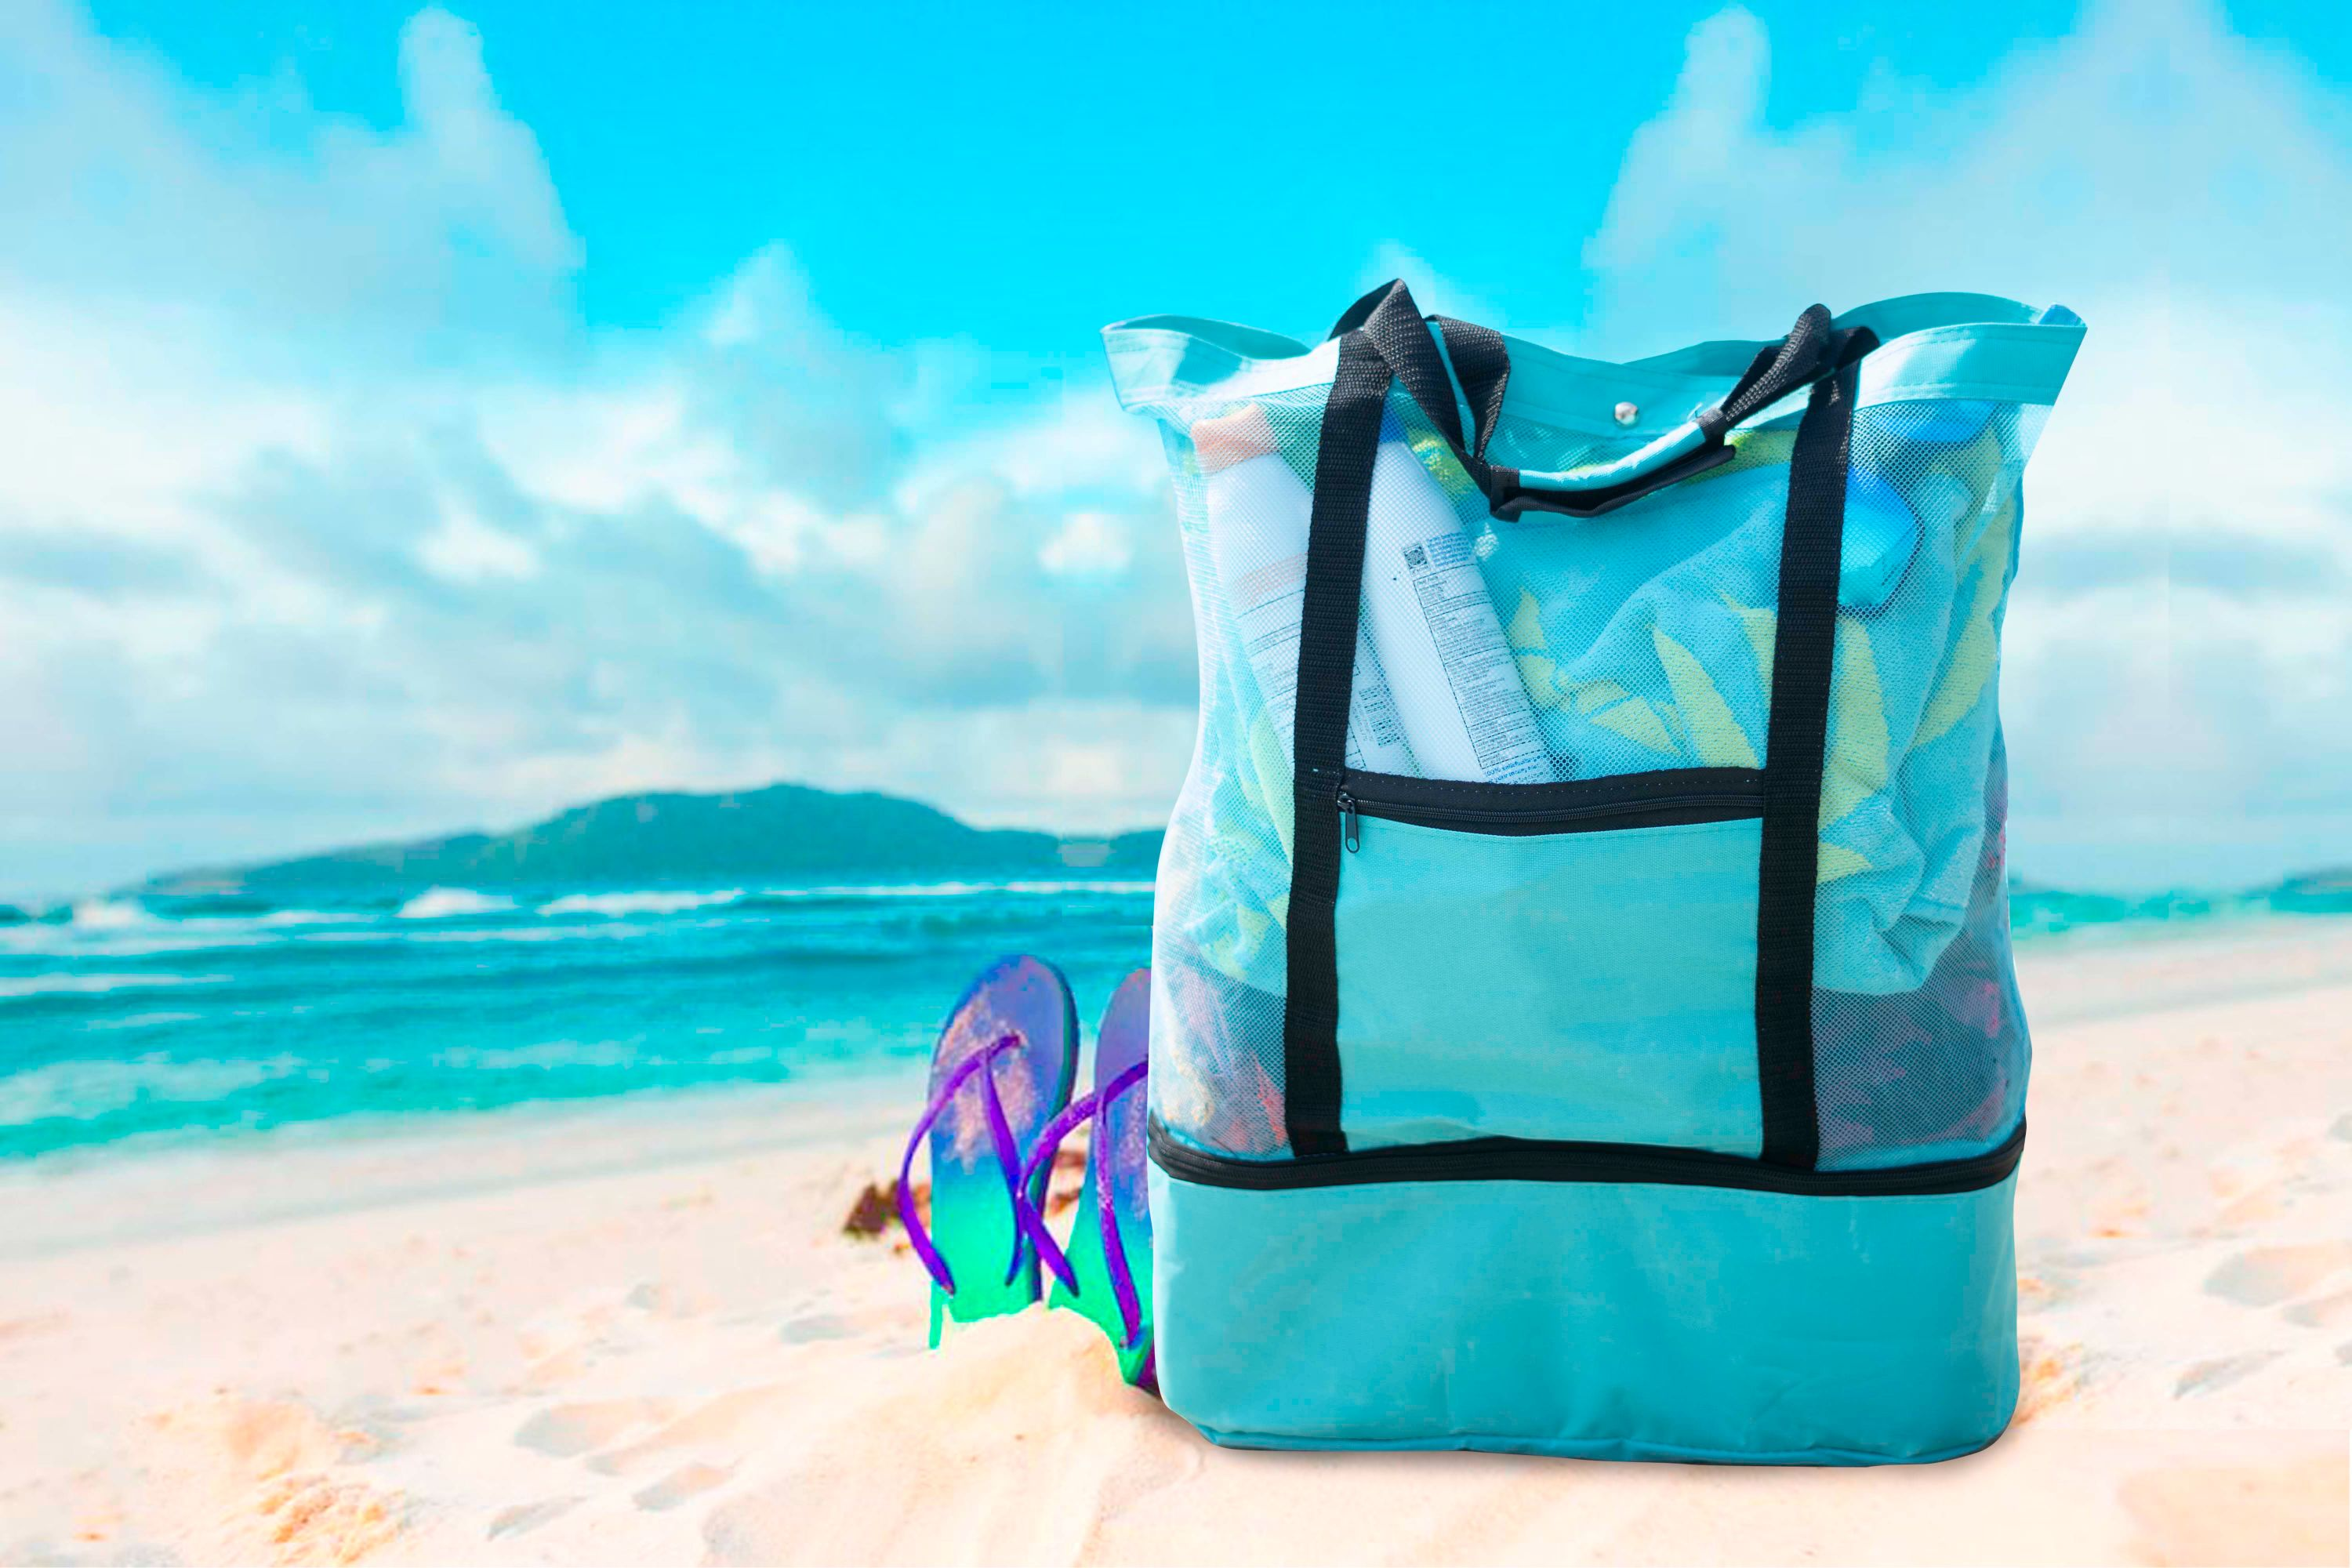 shopify-Insulated Cooler Picnic Beach Tote Bag-9